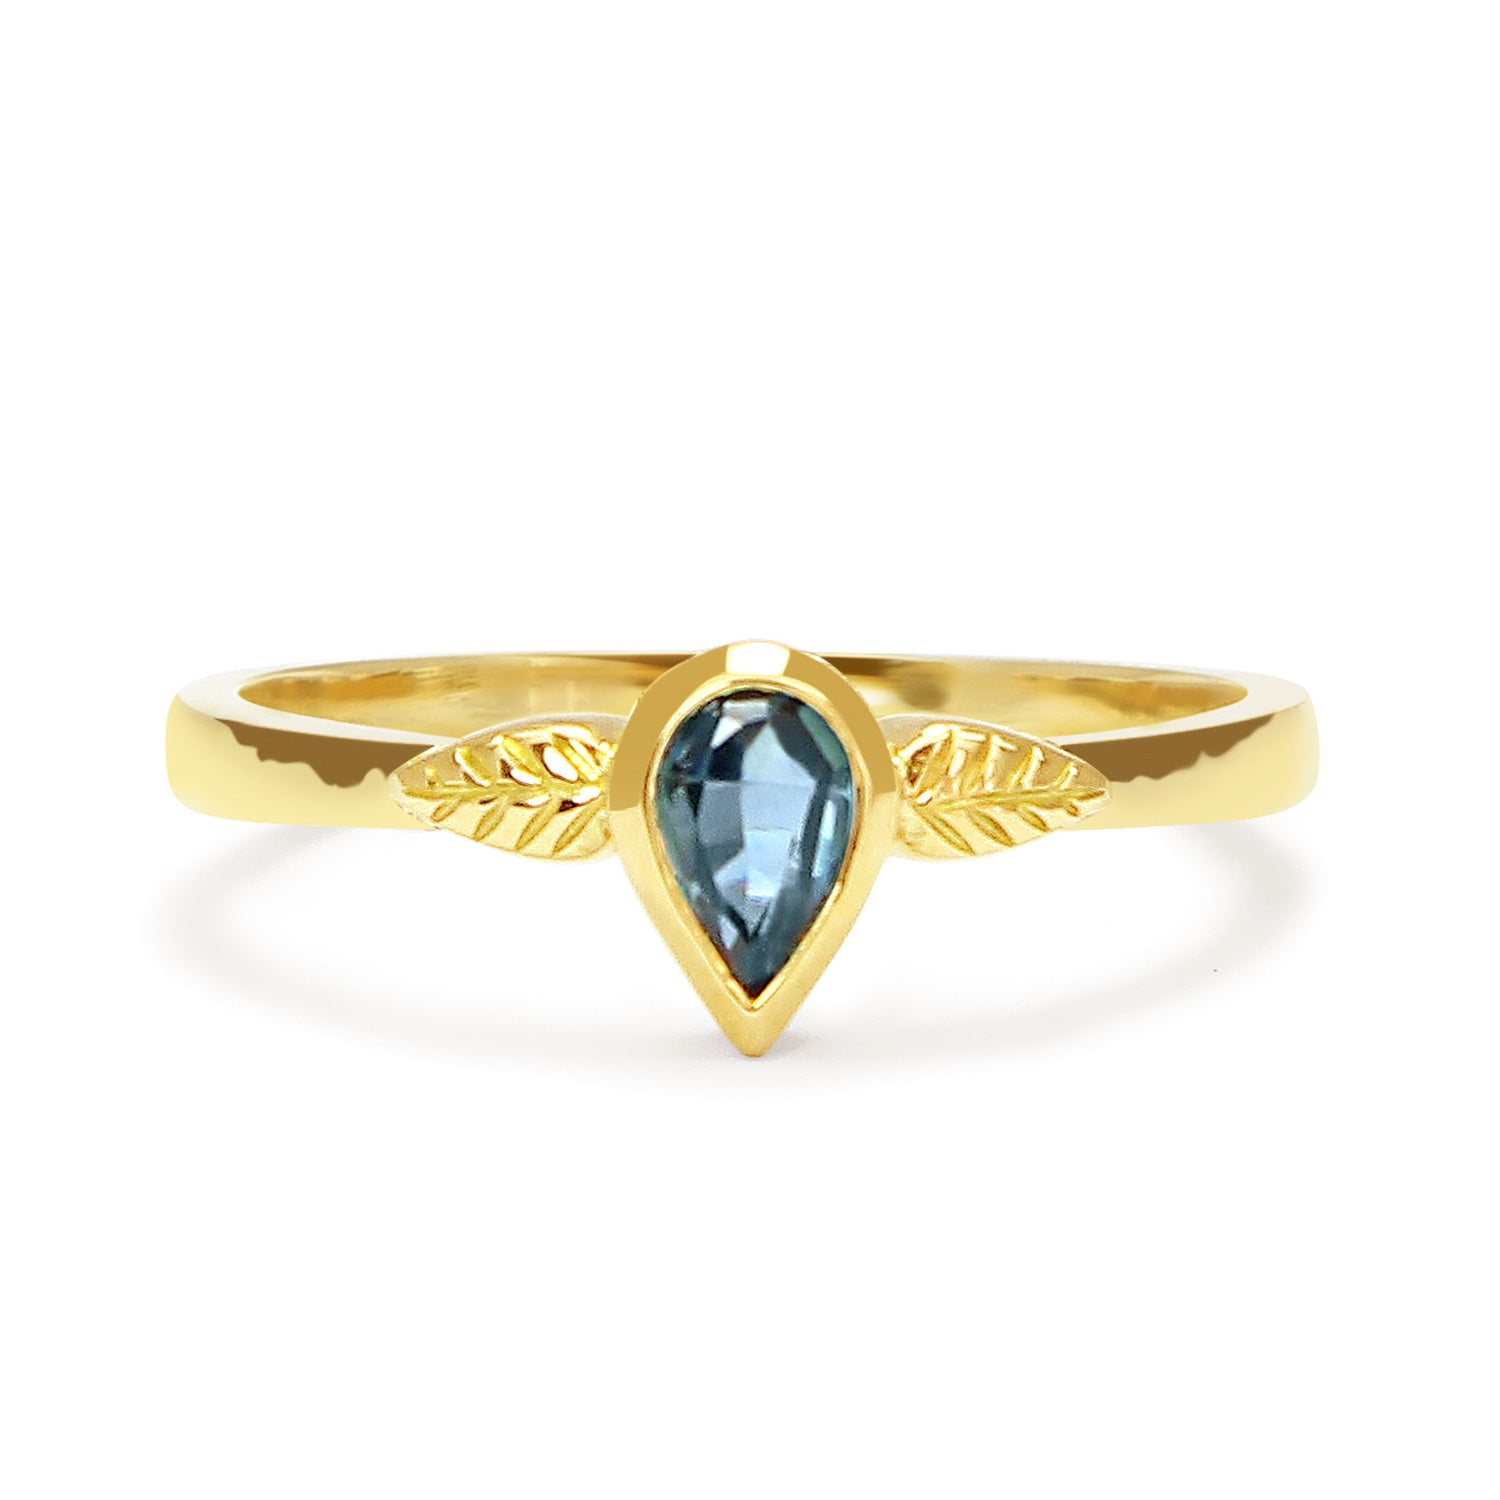 Bespoke nature-inspired engagement ring with pear-cut Malawi sapphire and 18ct recycled gold band